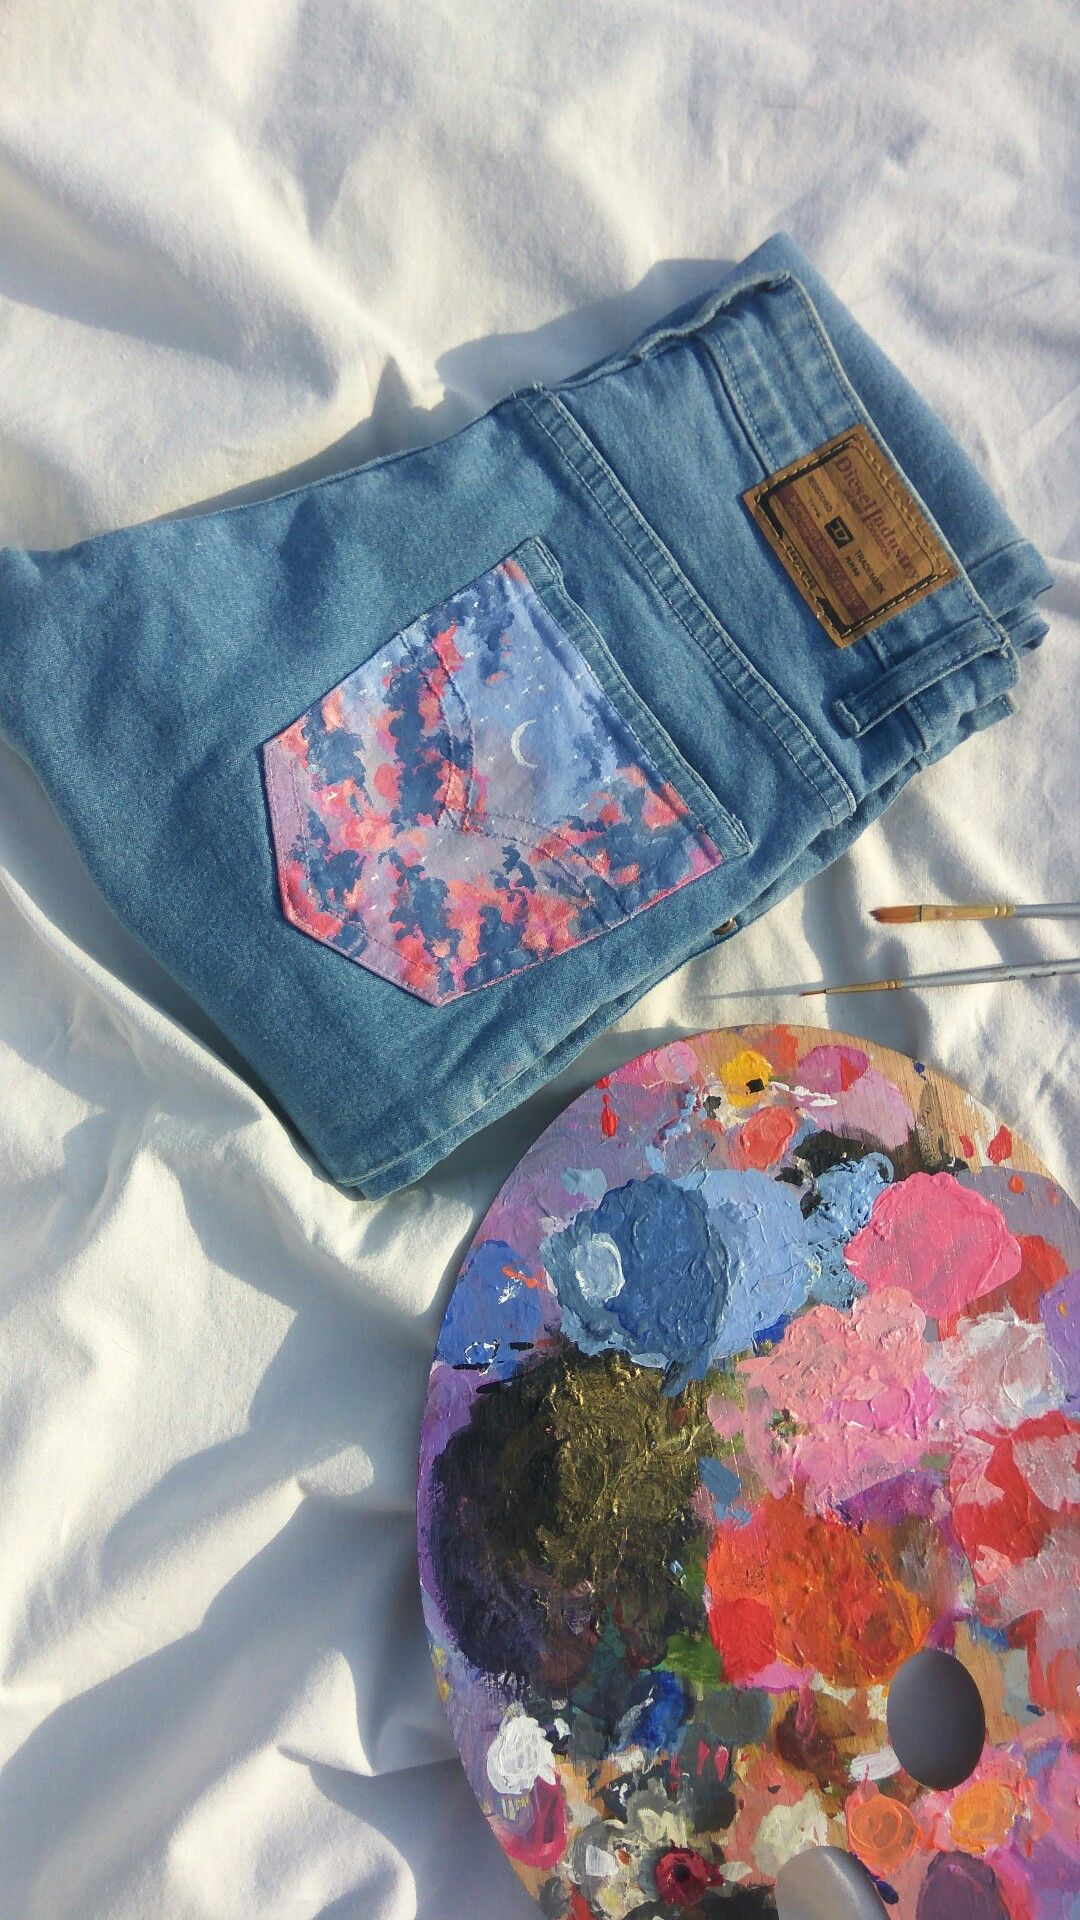 Painting on jeans, painting on denim, aesthetic painting